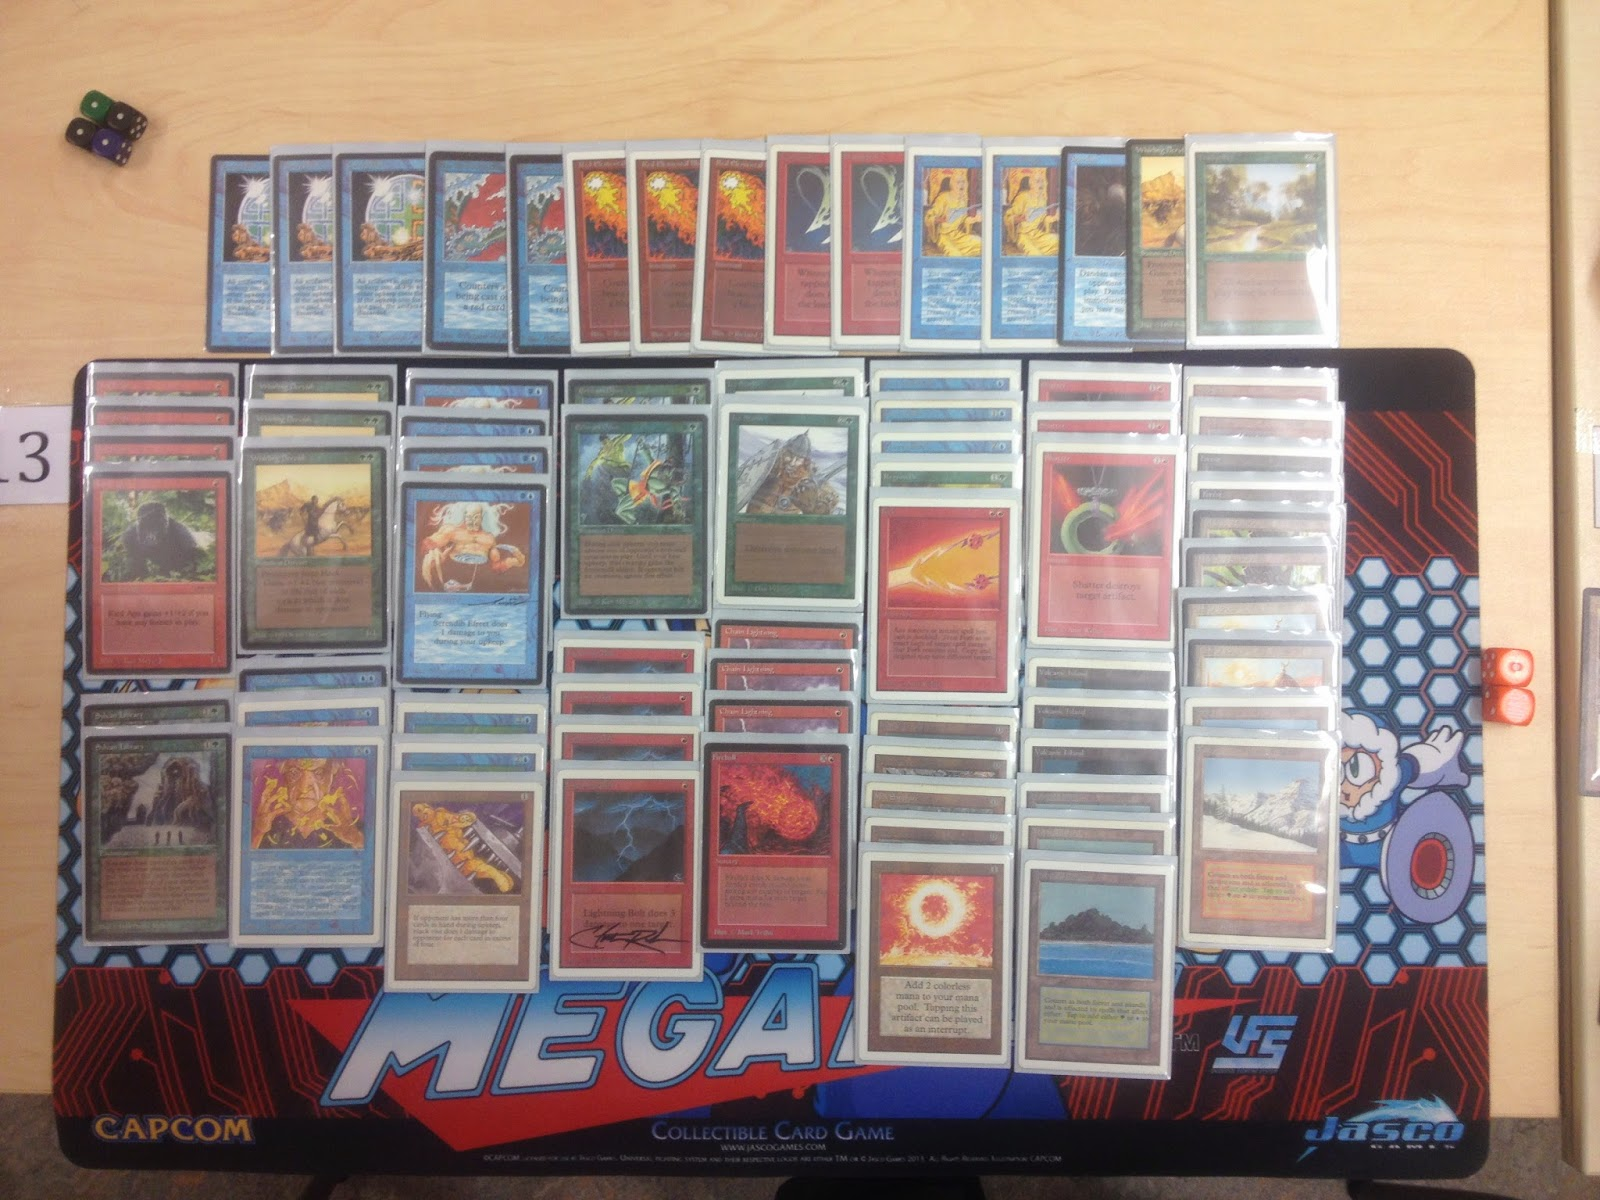 Deck by Jokemon